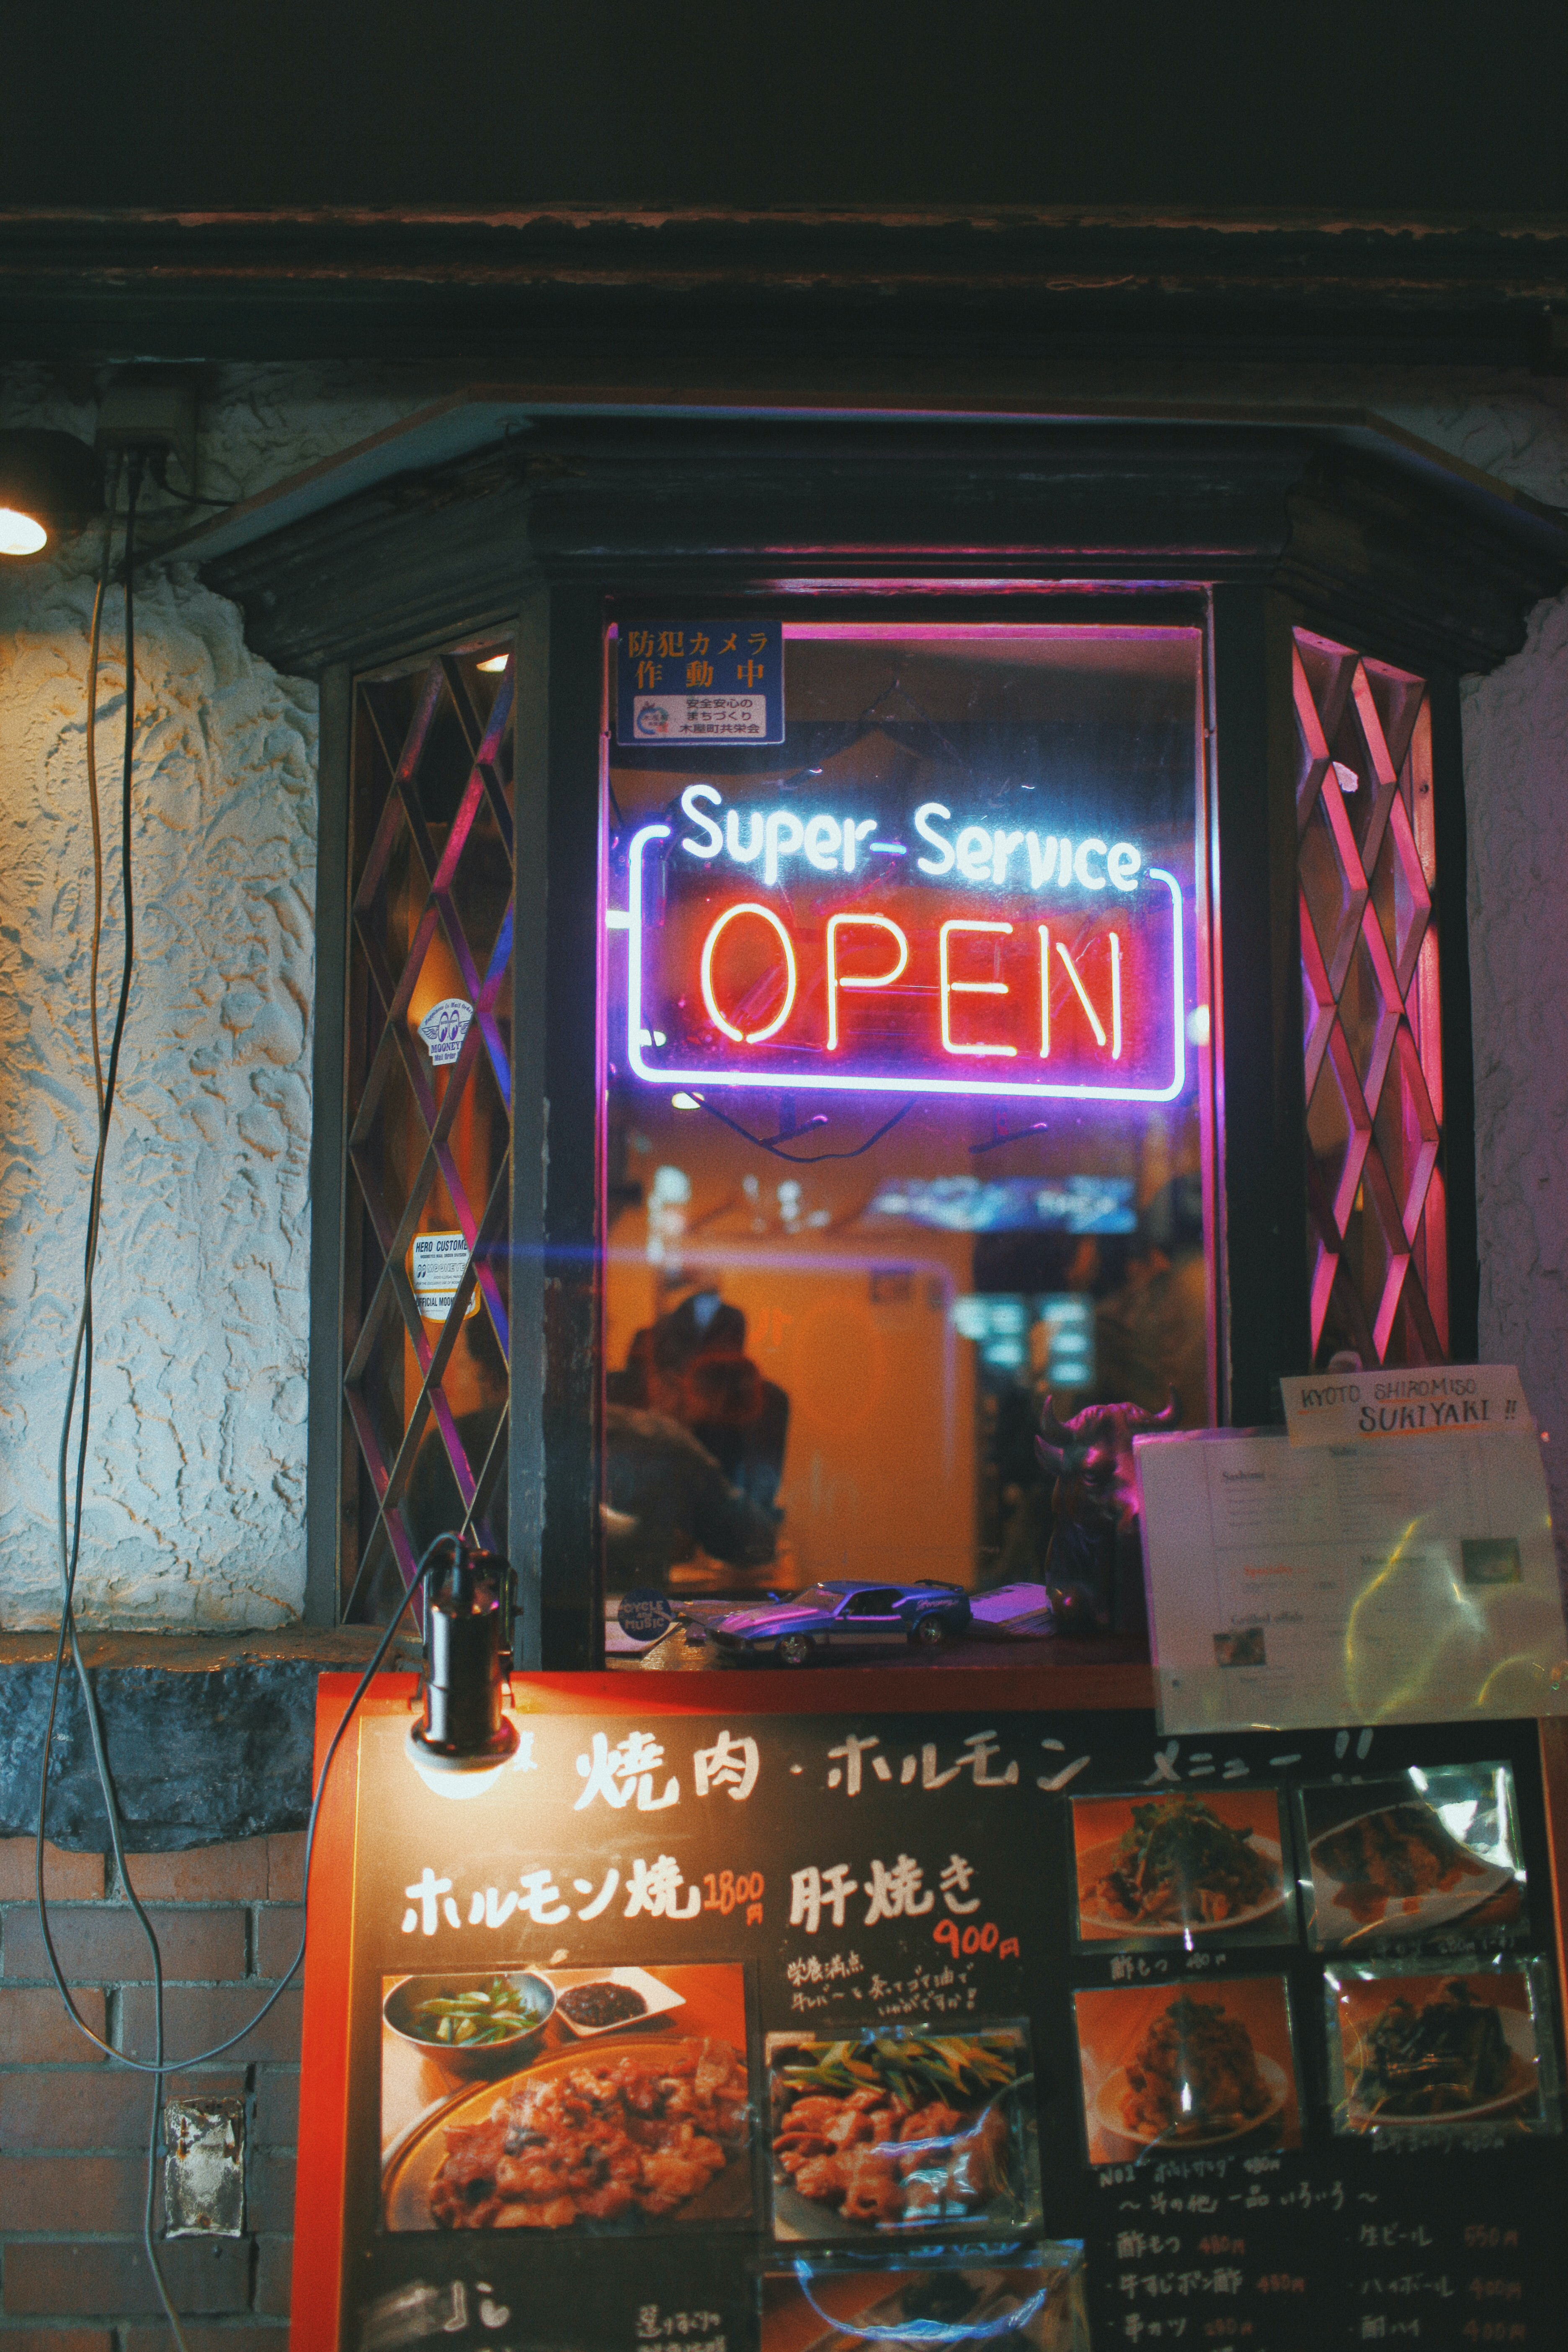 Super-Service open neon signage hanged on window